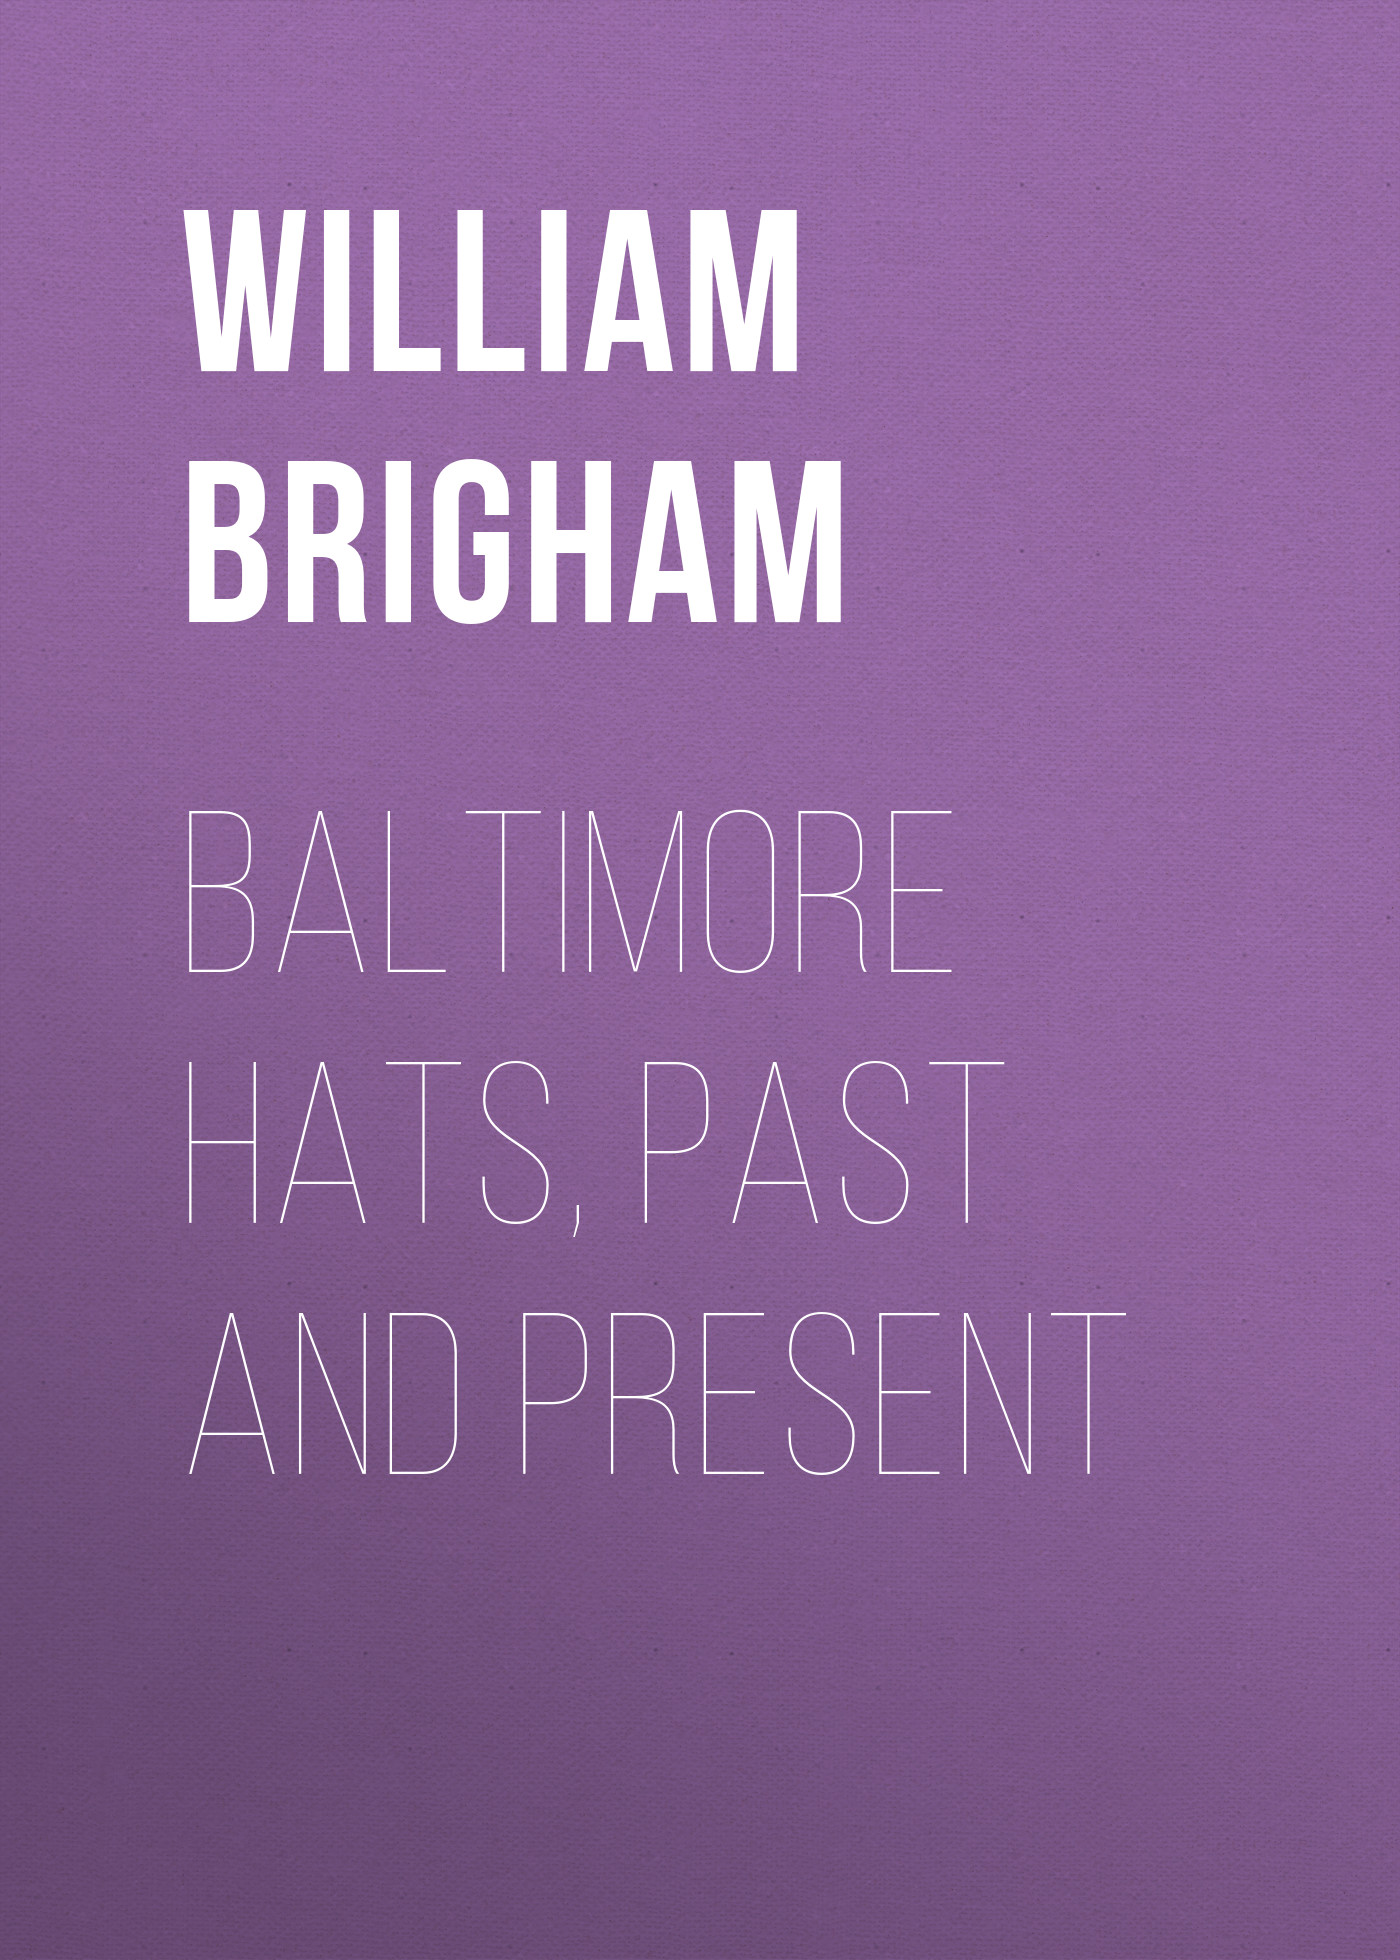 Brigham William Tufts Baltimore Hats, Past and Present все цены